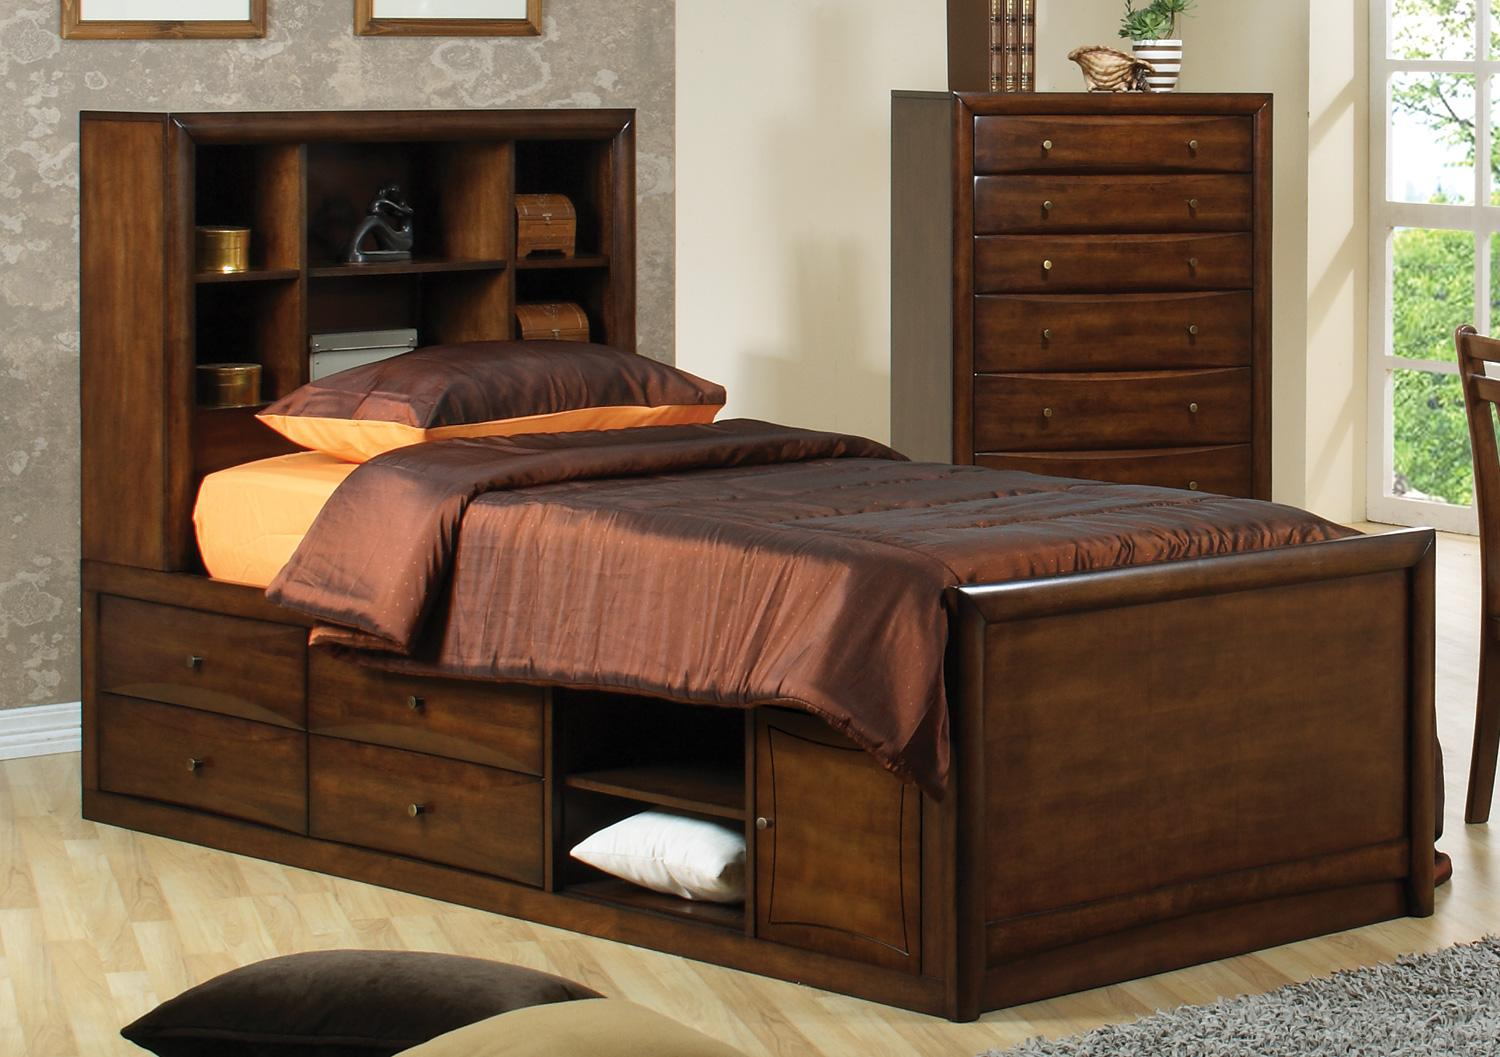 Scott youth captains bed passport furnishings - Youth bedroom furniture with storage ...